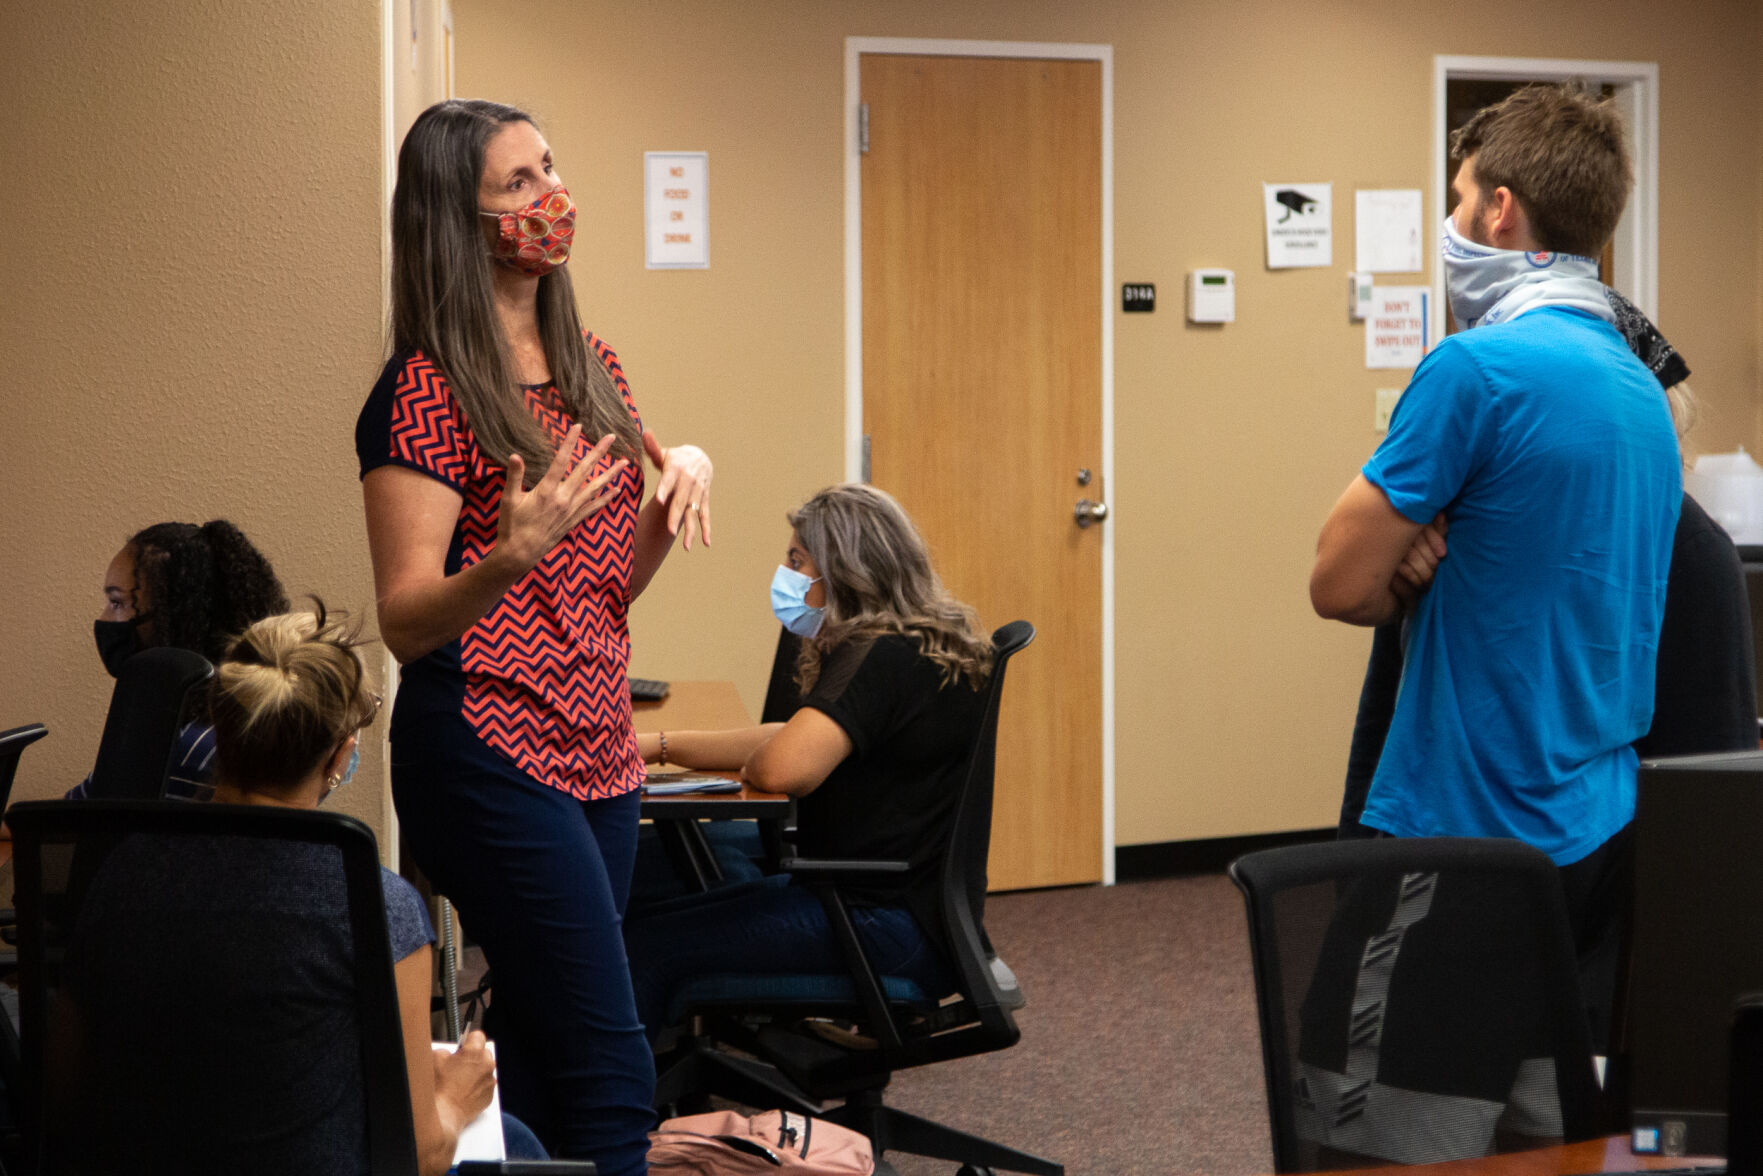 UTA professors, lecturers share how they've adapted their workflow and classes amid COVID-19